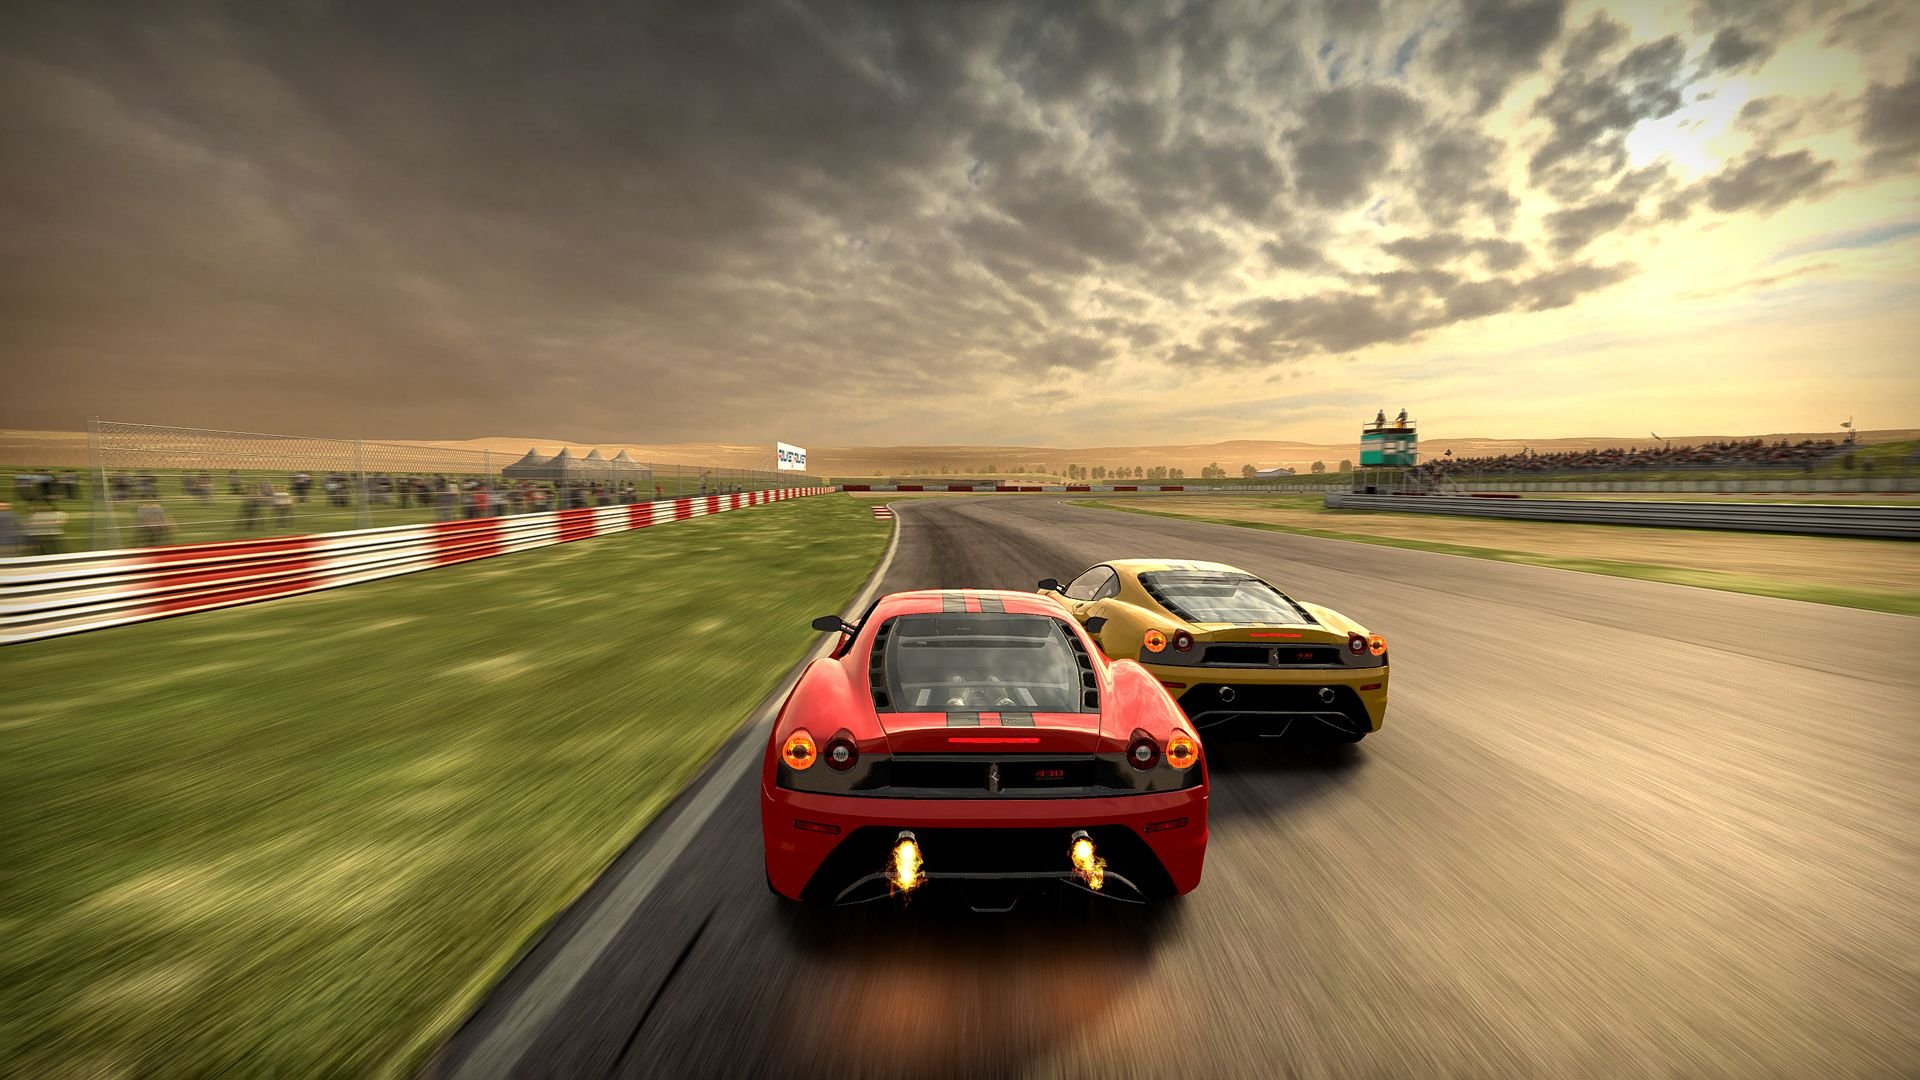 Driving and Racing Games Feel The Excitement of Online